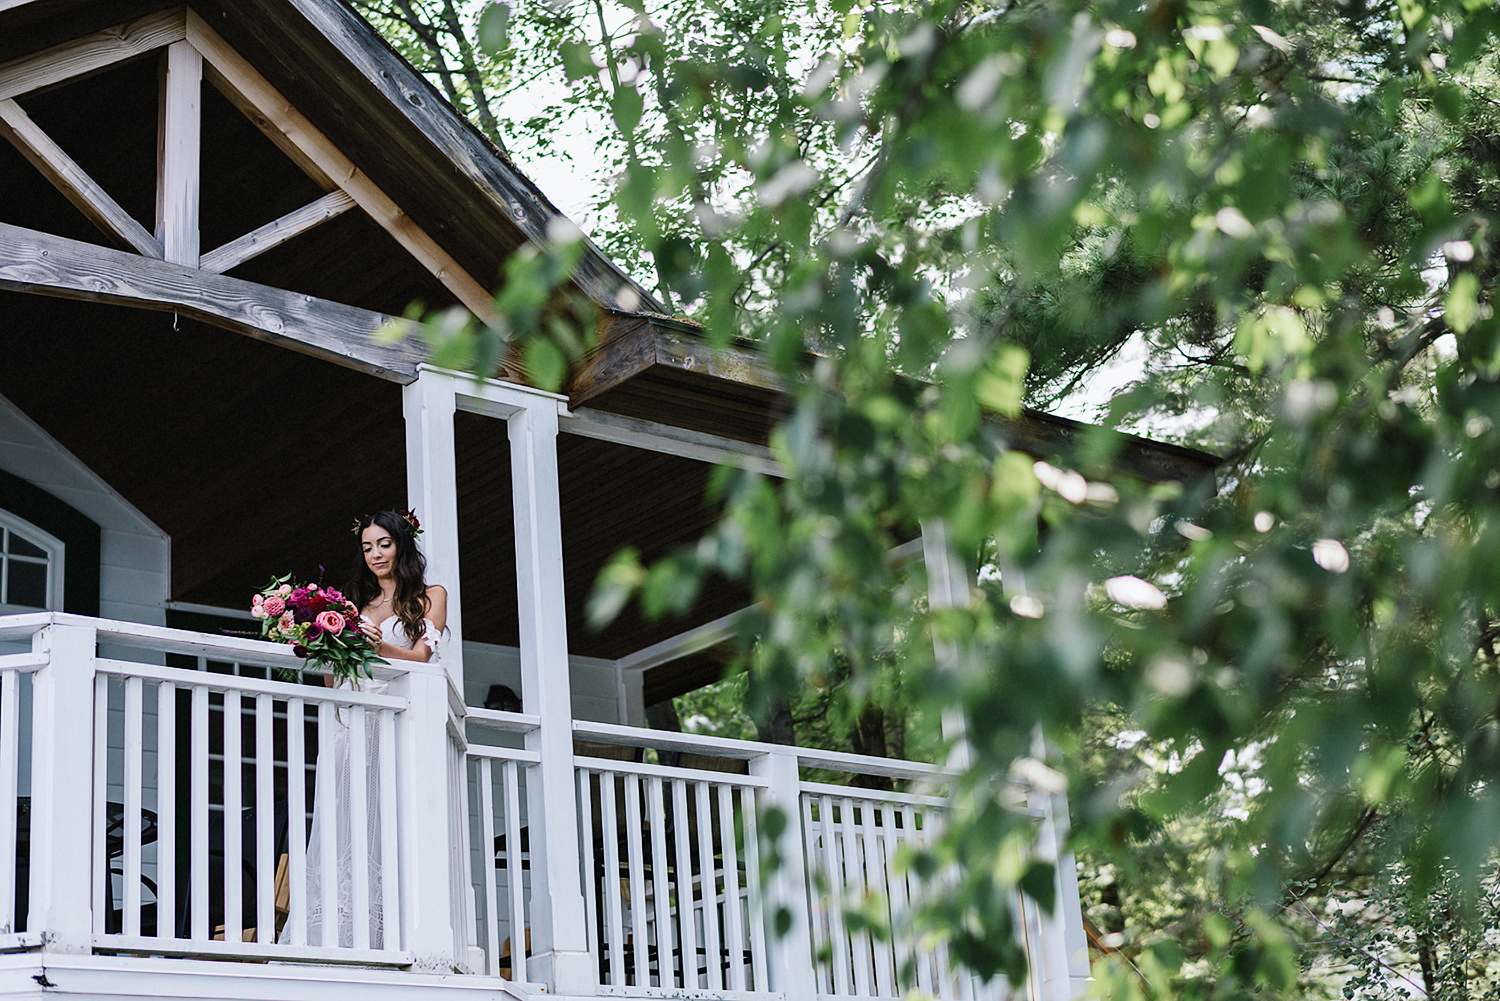 Muskoka-Cottage-Wedding-Photography-Photographer_Photojournalistic-Documentary-Wedding-Photography_Vintage-Bride-Lovers-Land-Dress_Rue-Des-Seins_Bridal-Portrait-Cabin.jpg